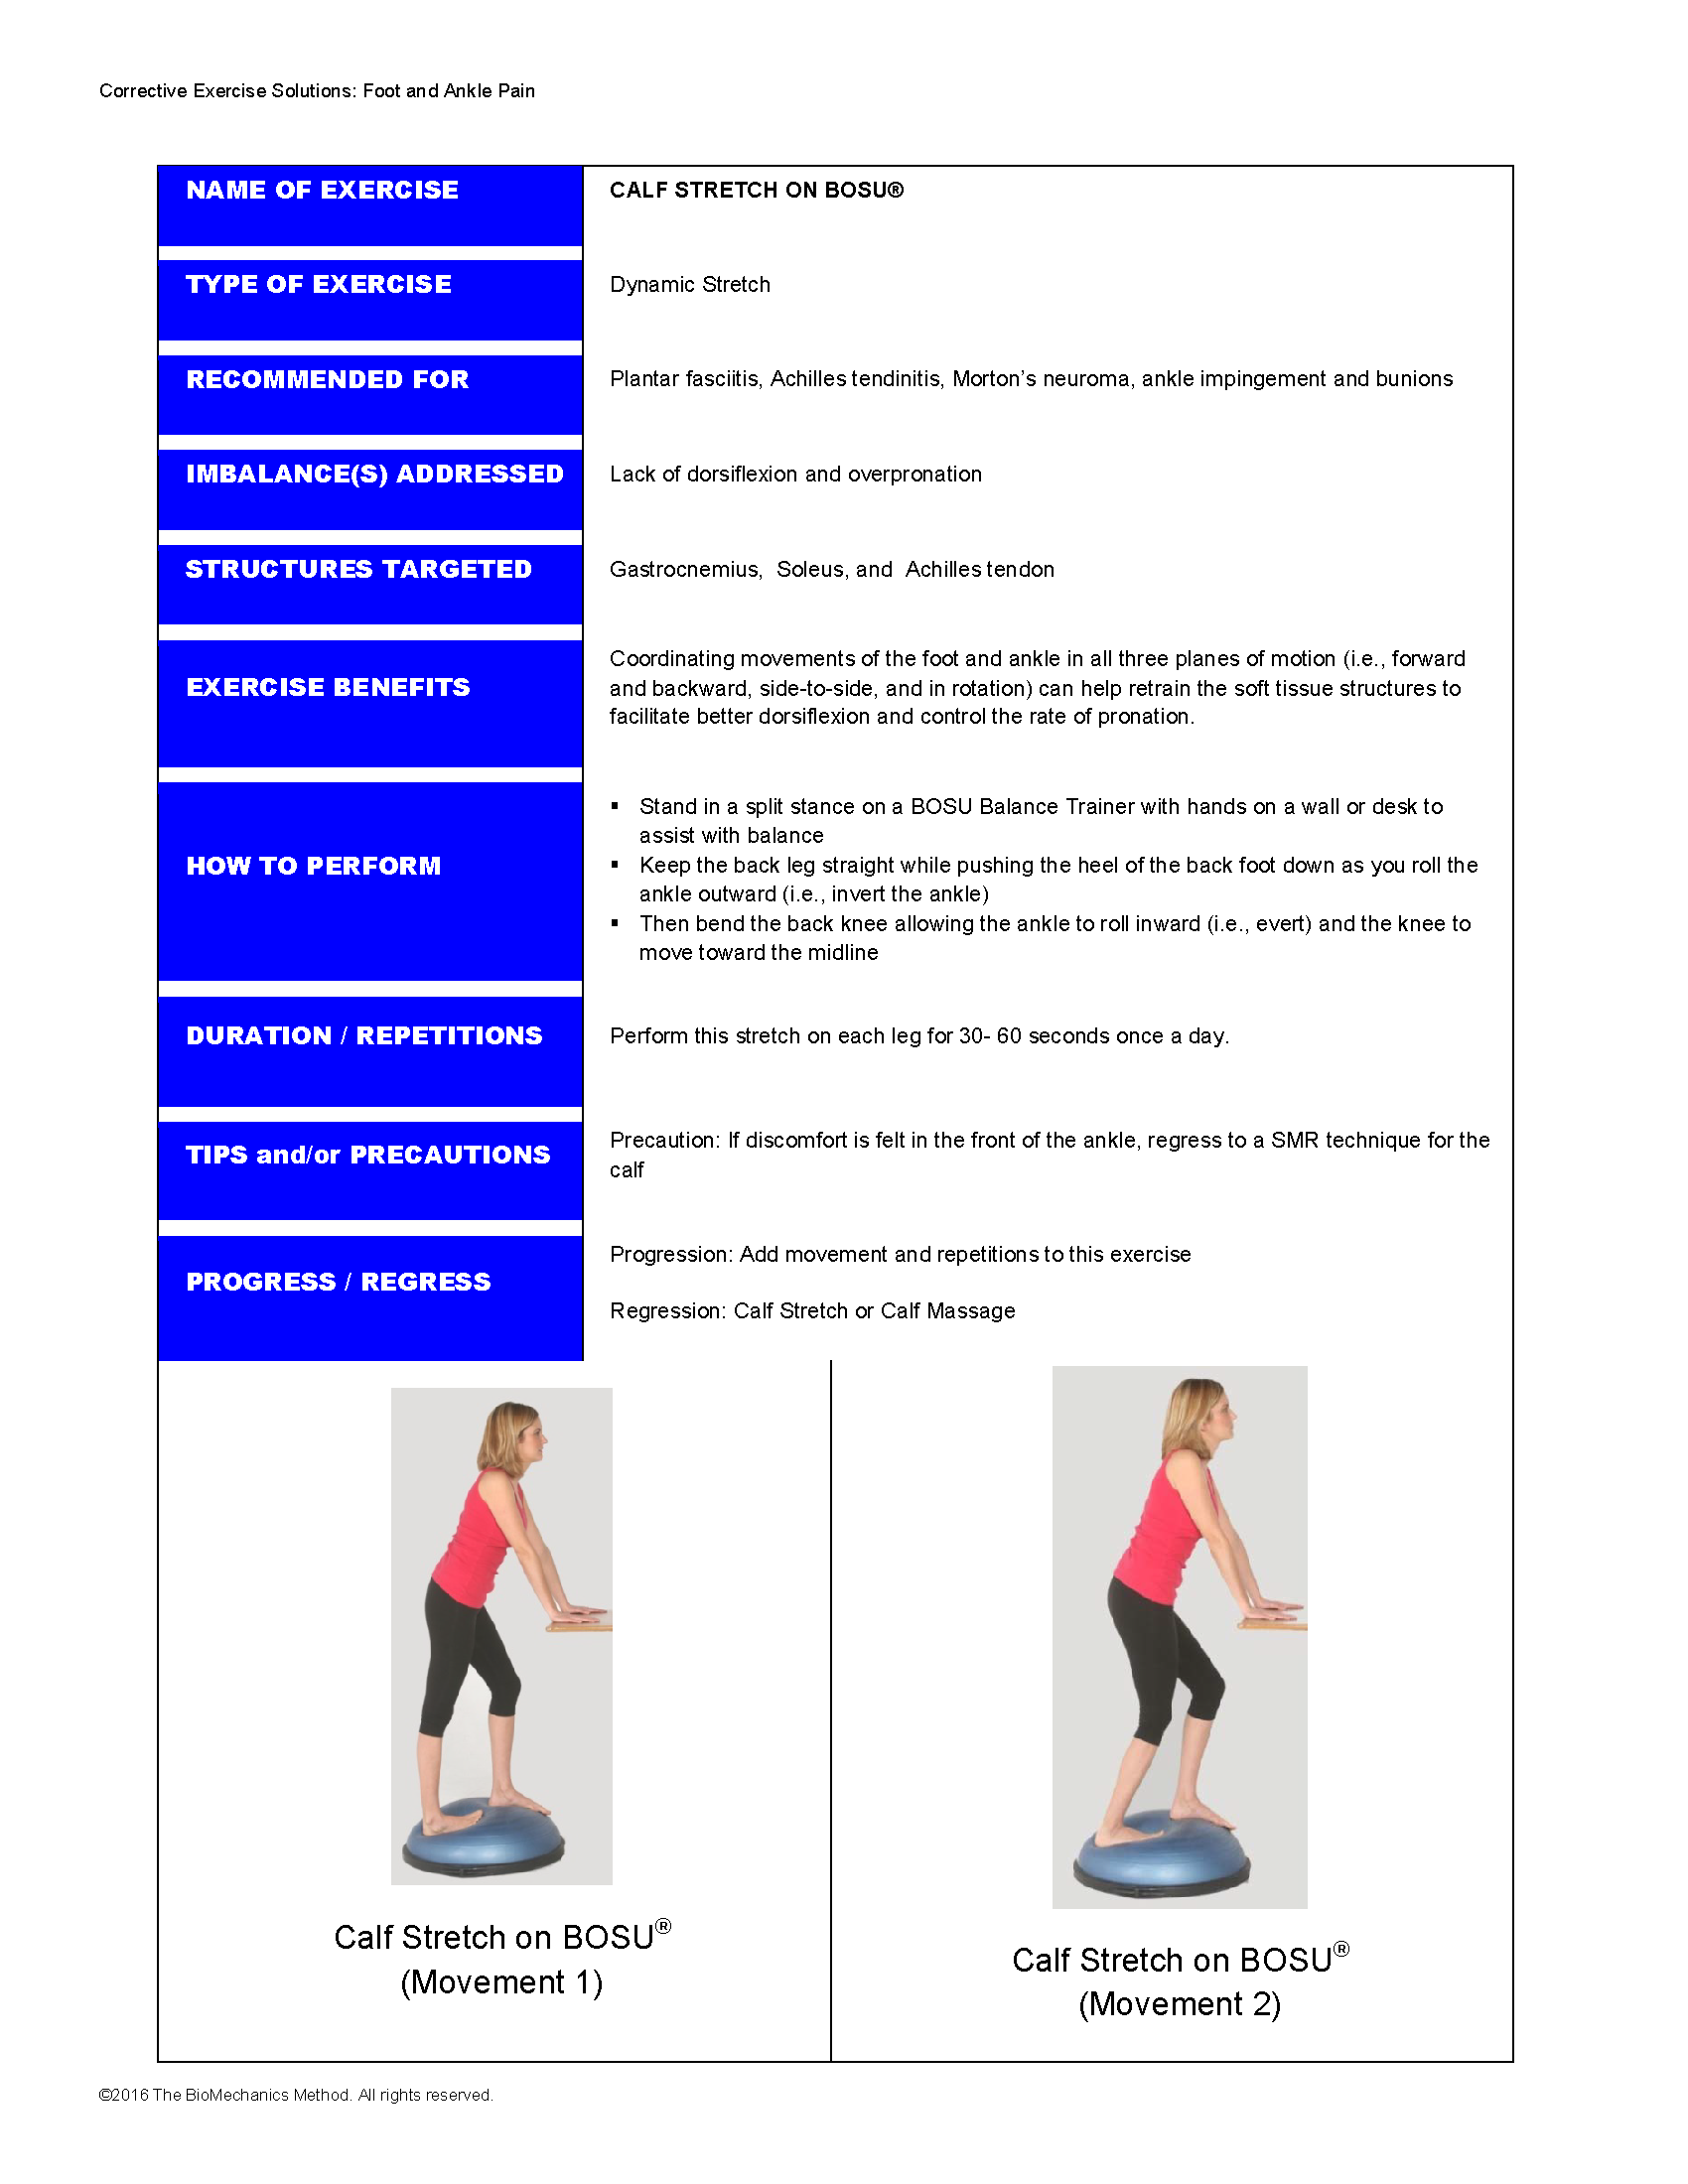 Calf Stretch on BOSU®